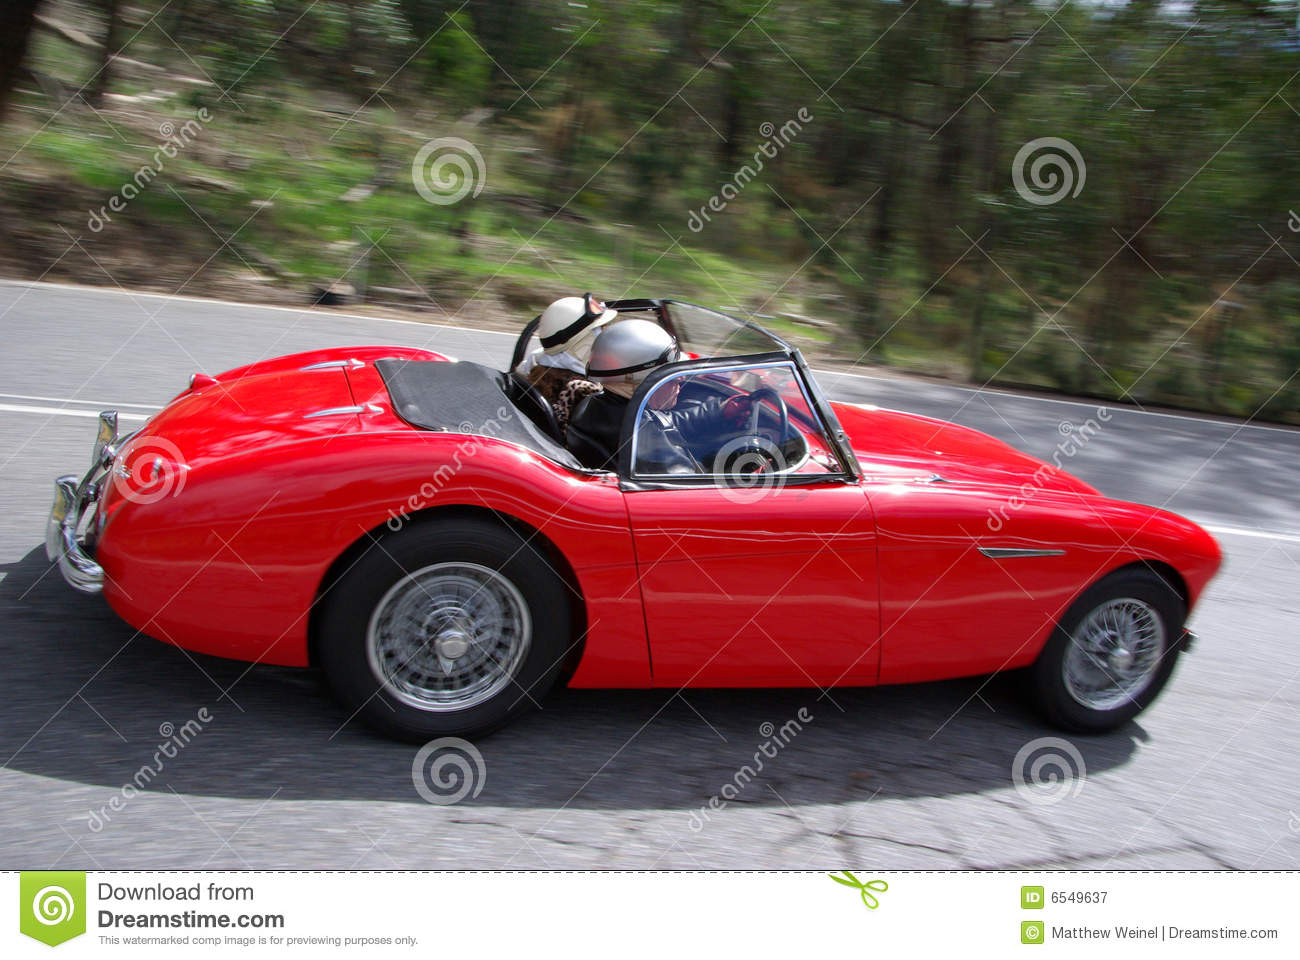 Red Austin Healey Roadster